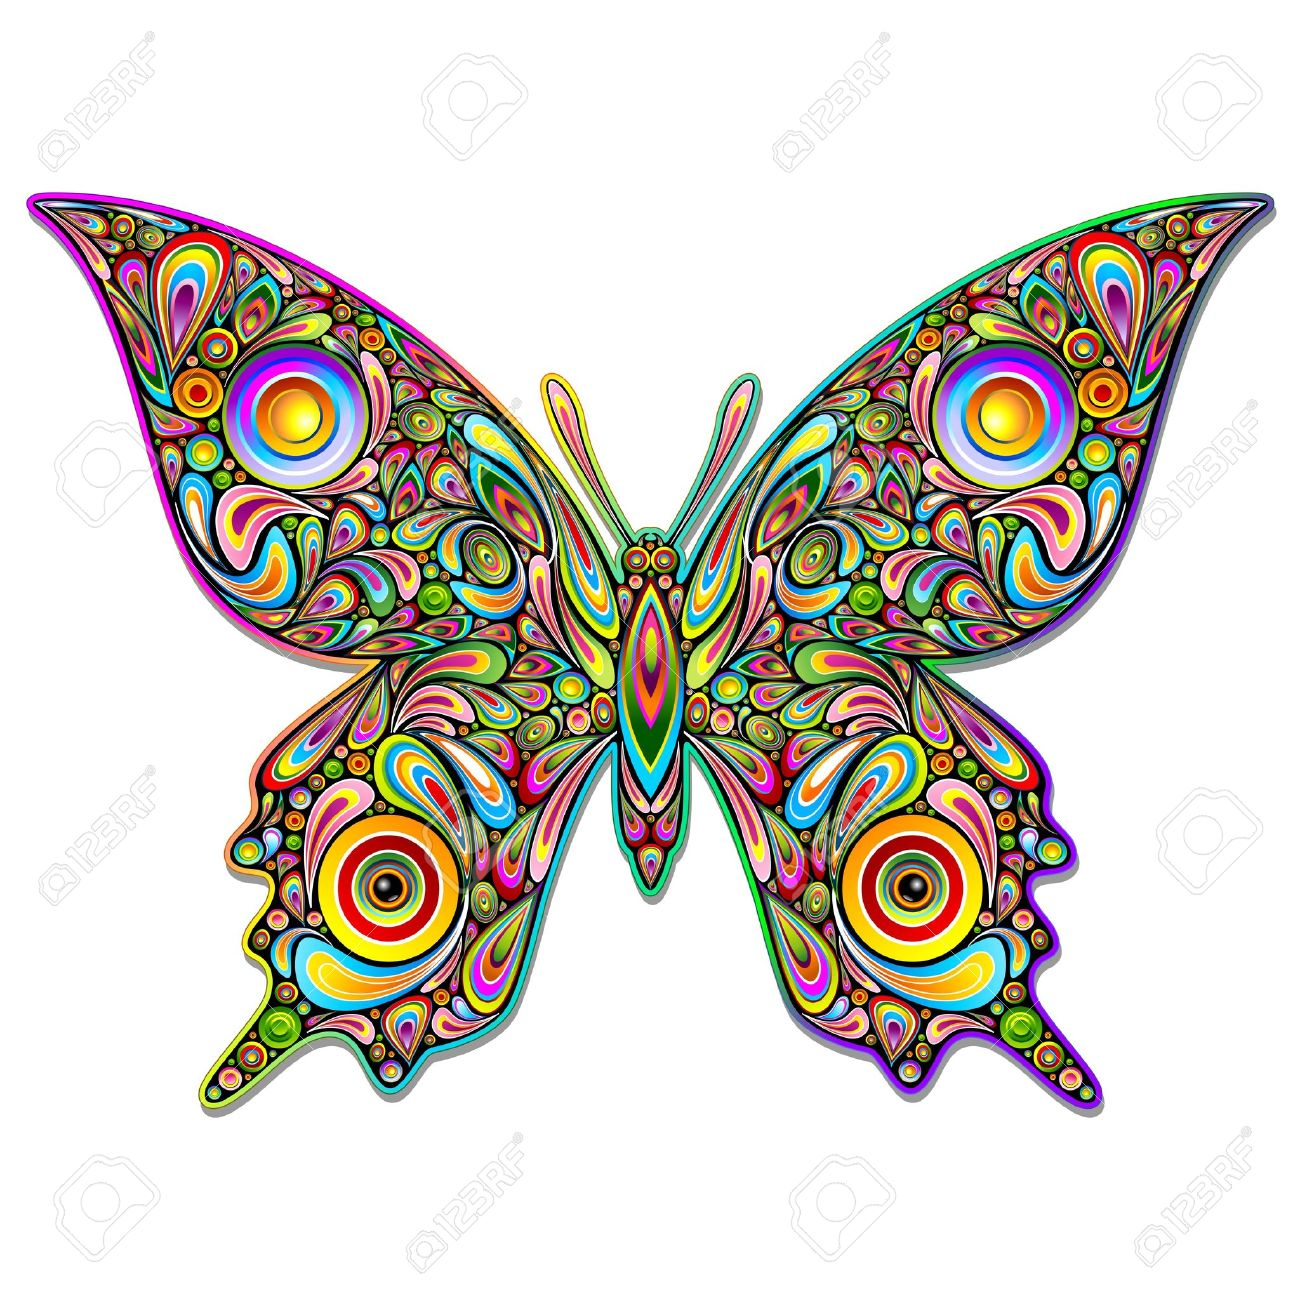 Butterfly Psychedelic Art Design Stock Vector - 17032548